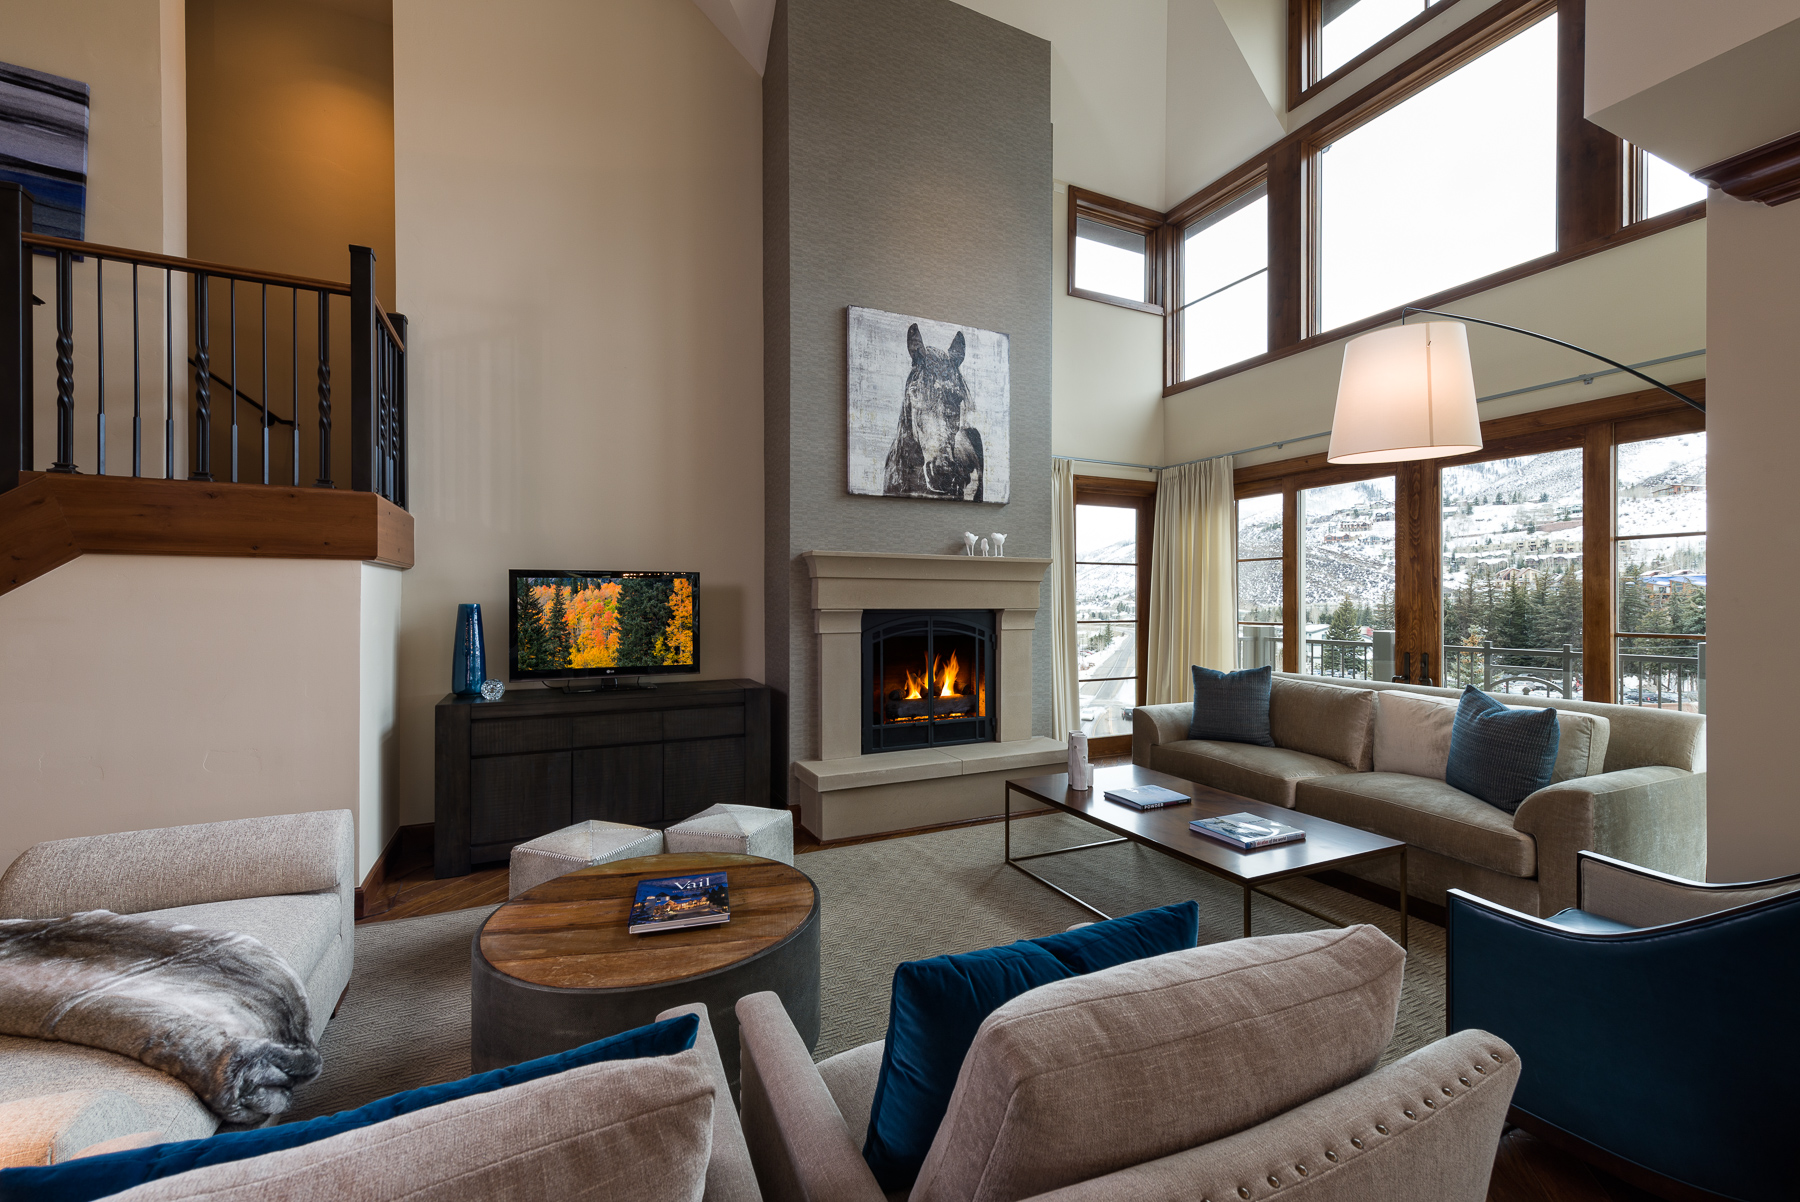 共管物業 為 出售 在 The Ritz-Carlton Residences, Vail 728 West Lionshead Cir 402 Lionshead, Vail, 科羅拉多州 81657 美國